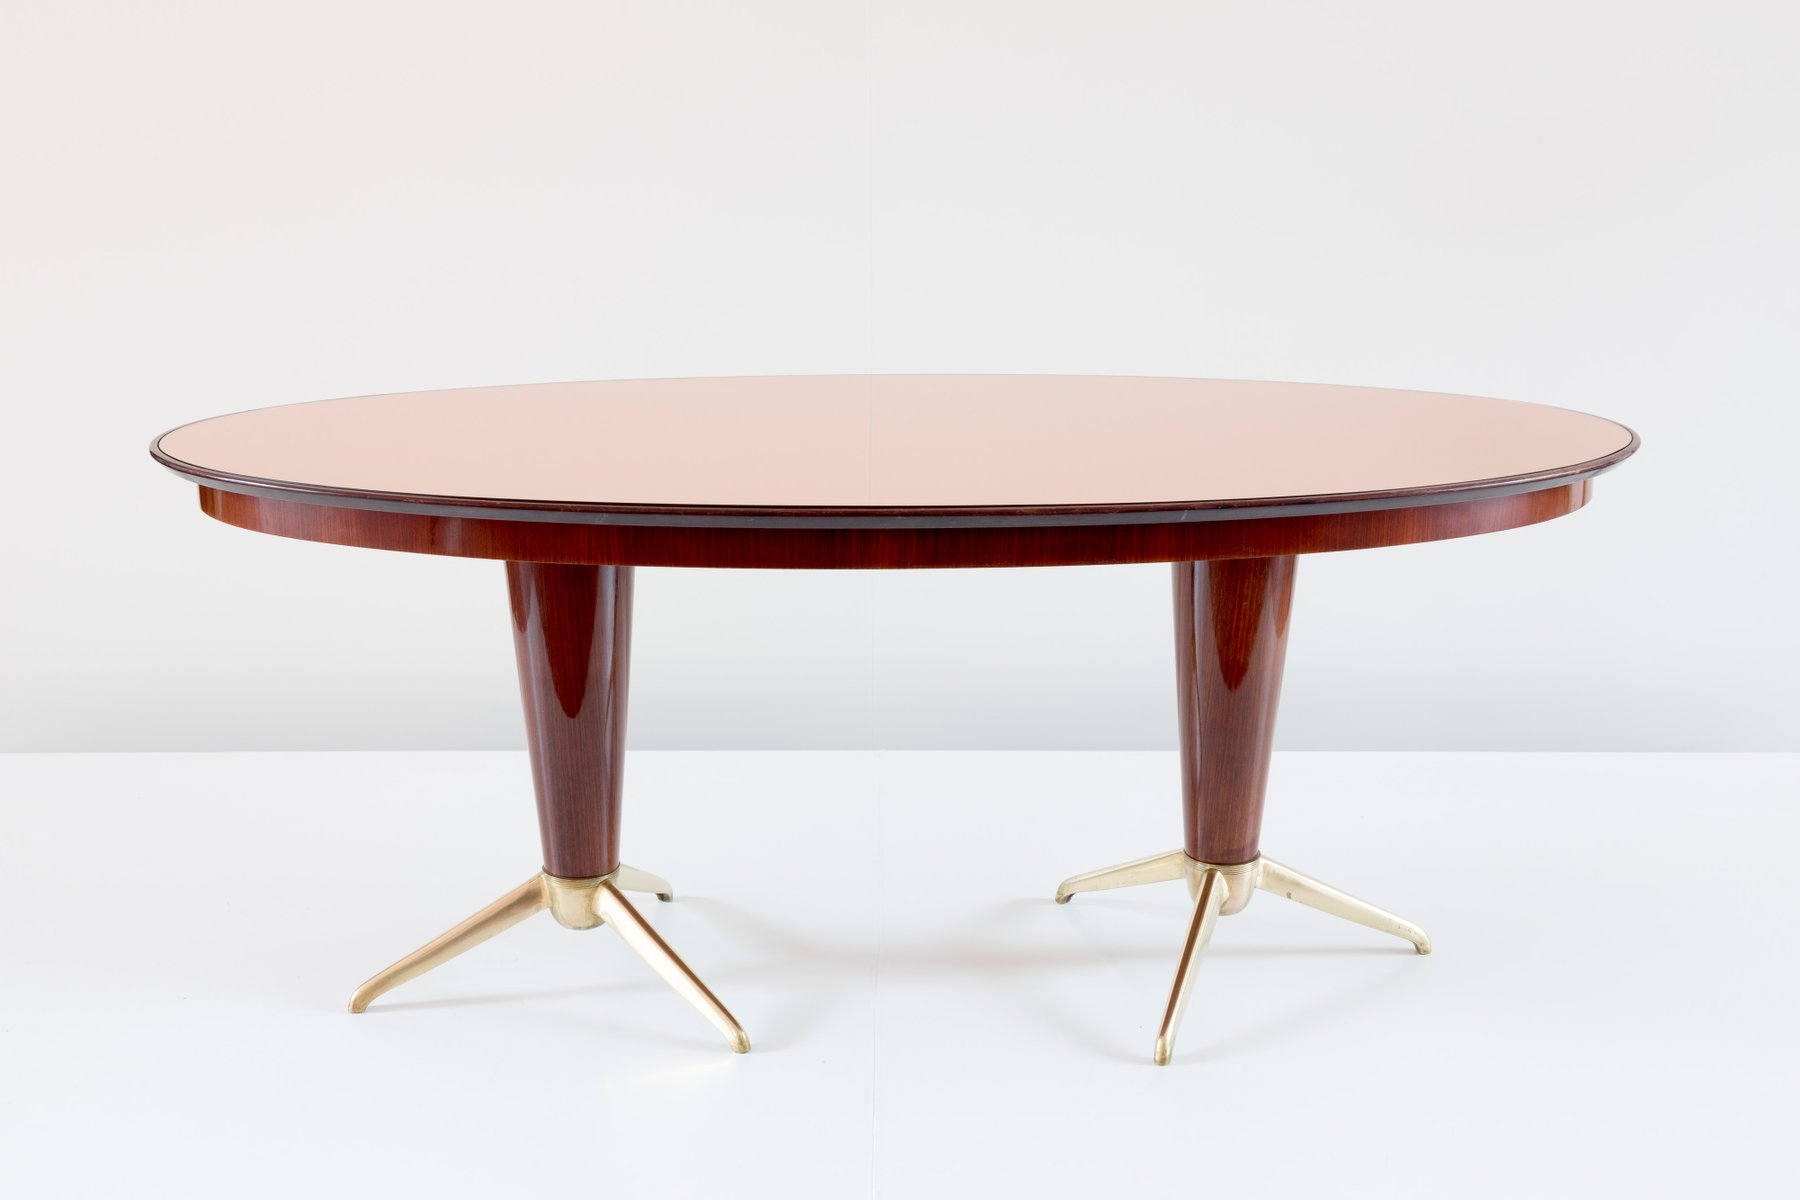 Italian Mahogany Oval Dining Table 1952